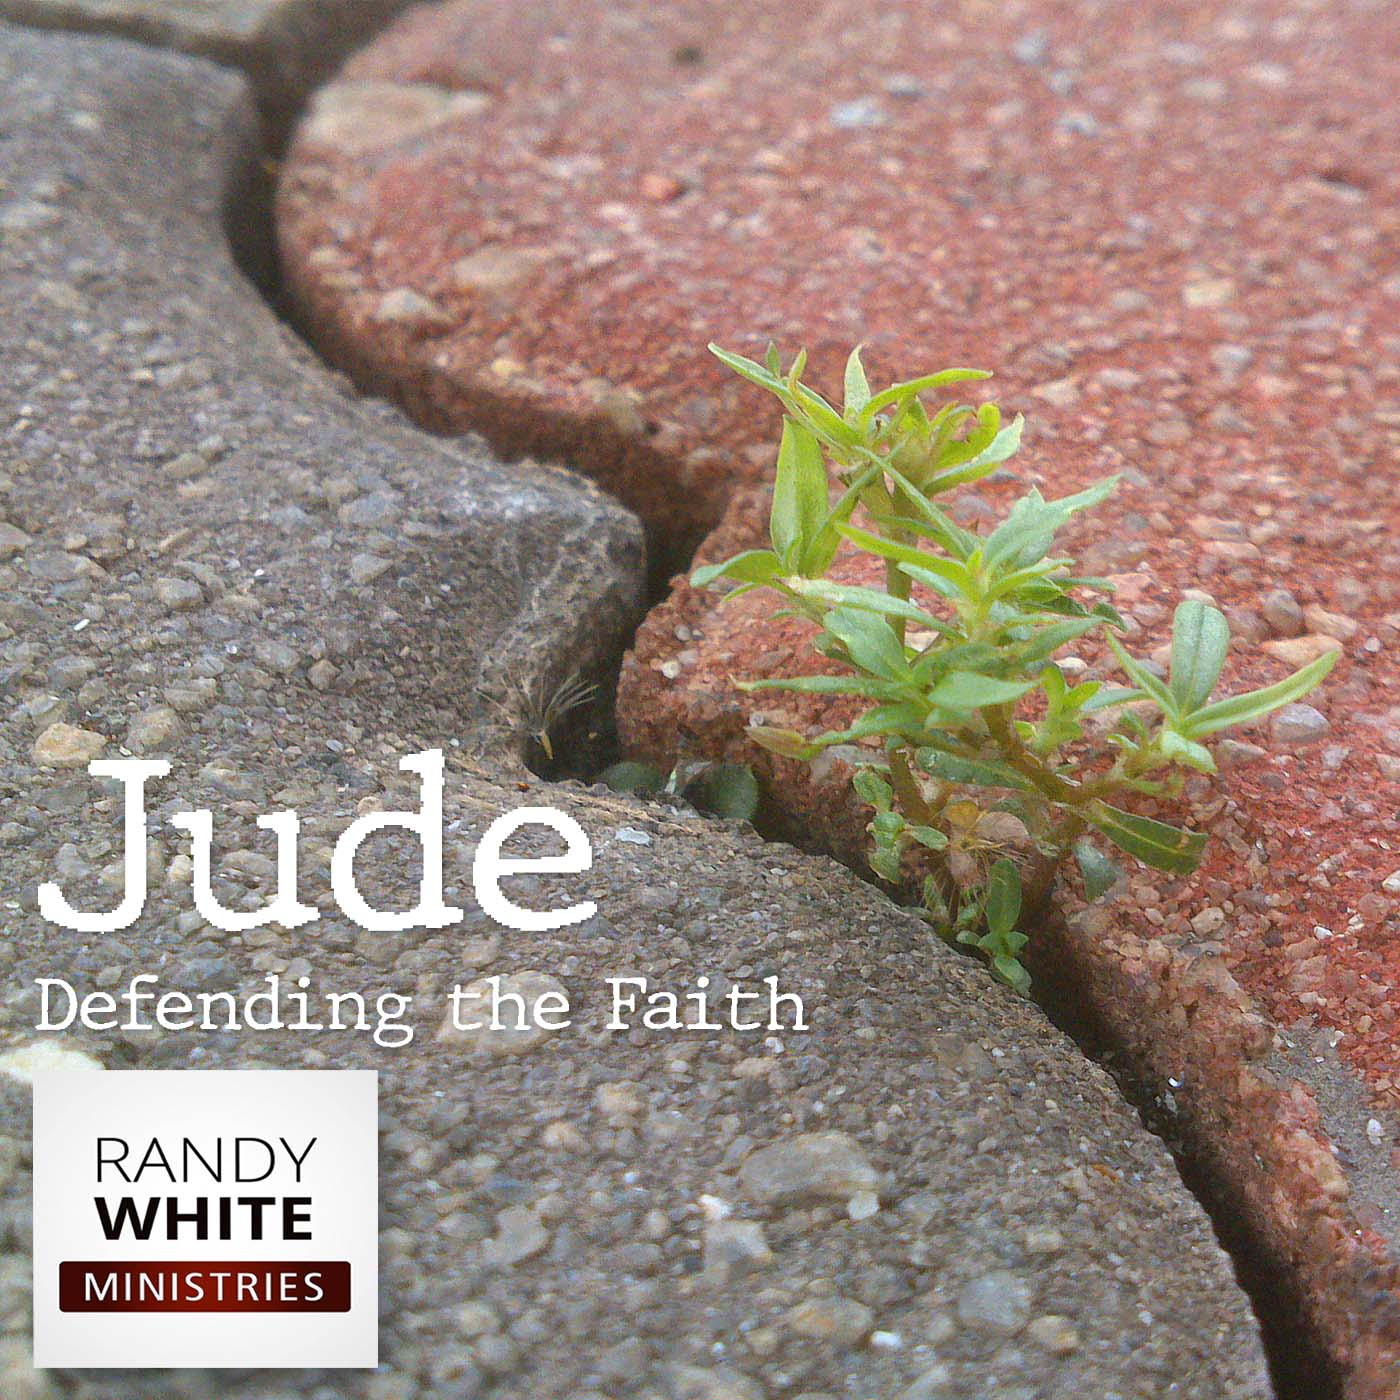 RWM: The Book of Jude - Defending the Faith